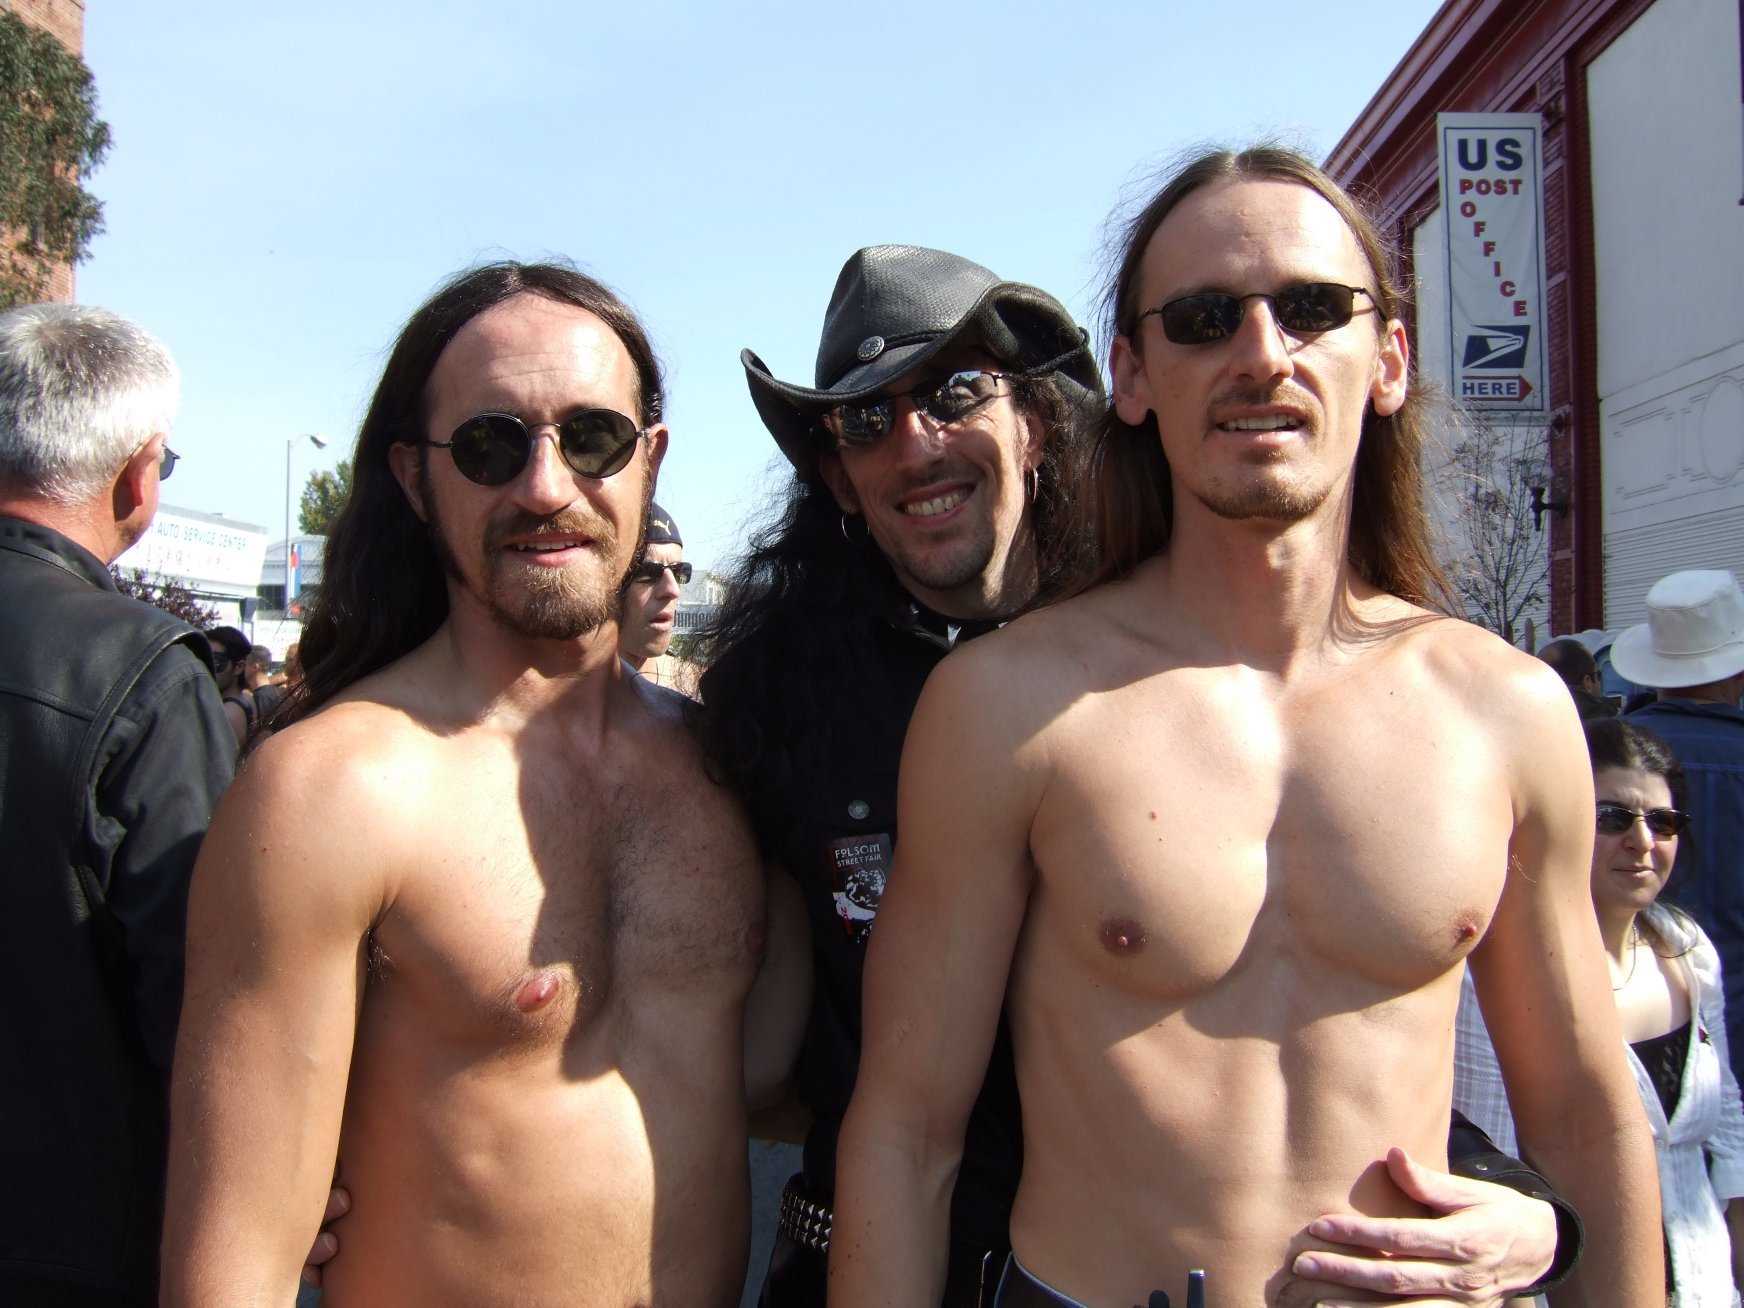 Paul, Herb, and Rob at Folsom Fair 2006